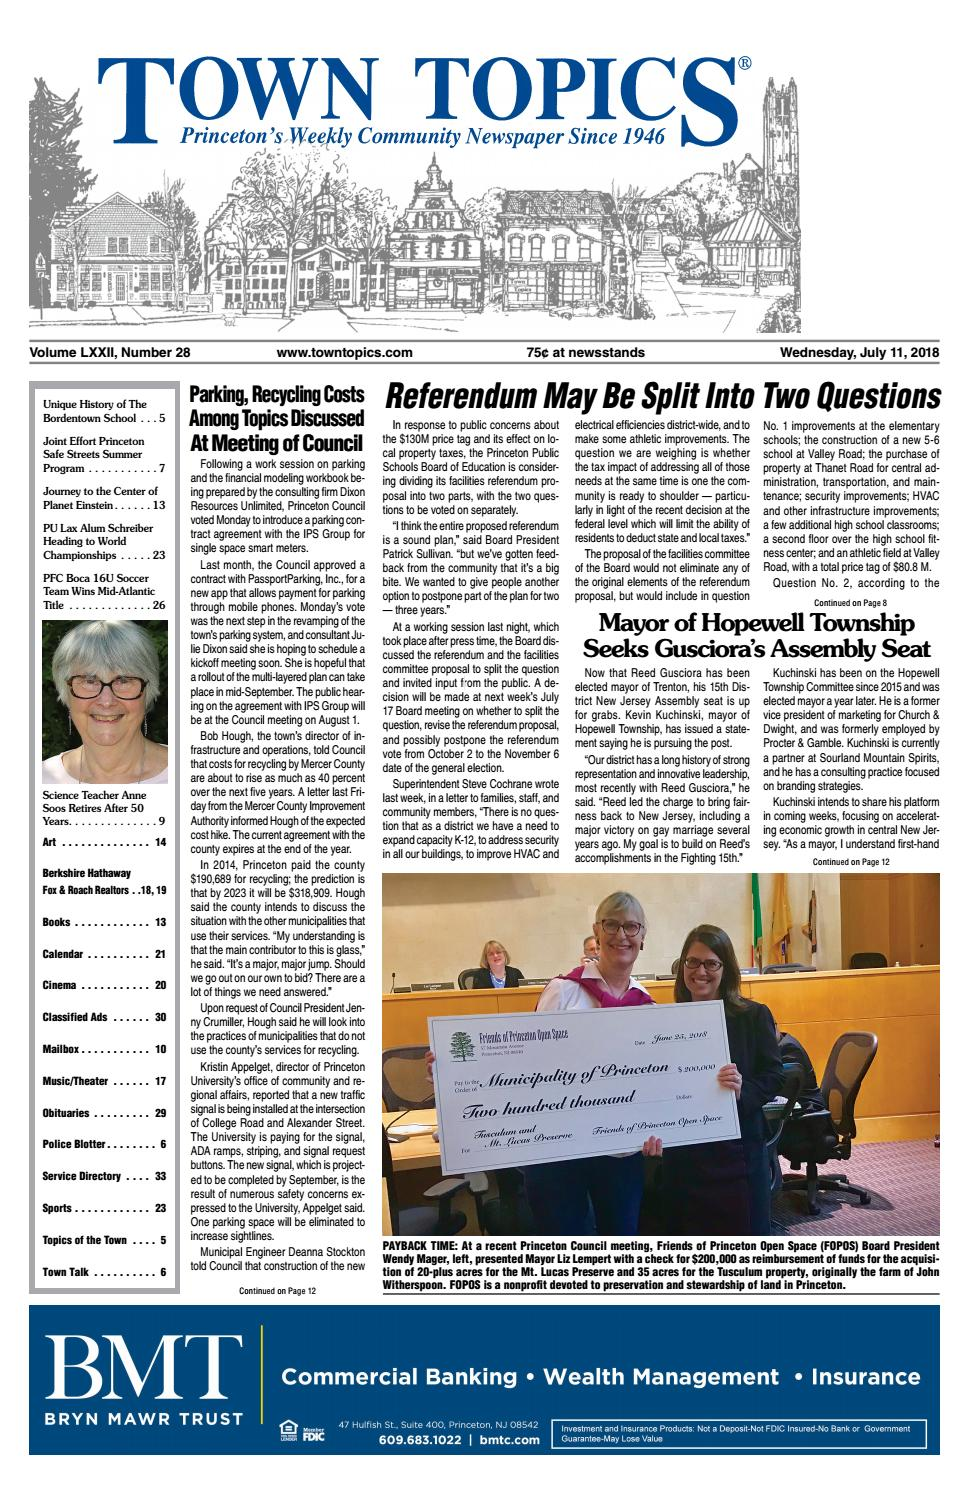 Town Topics Newspaper July 11 2018 By Witherspoon Media Group Issuu Electrical Wiring Residential 15th Edition Answer Key